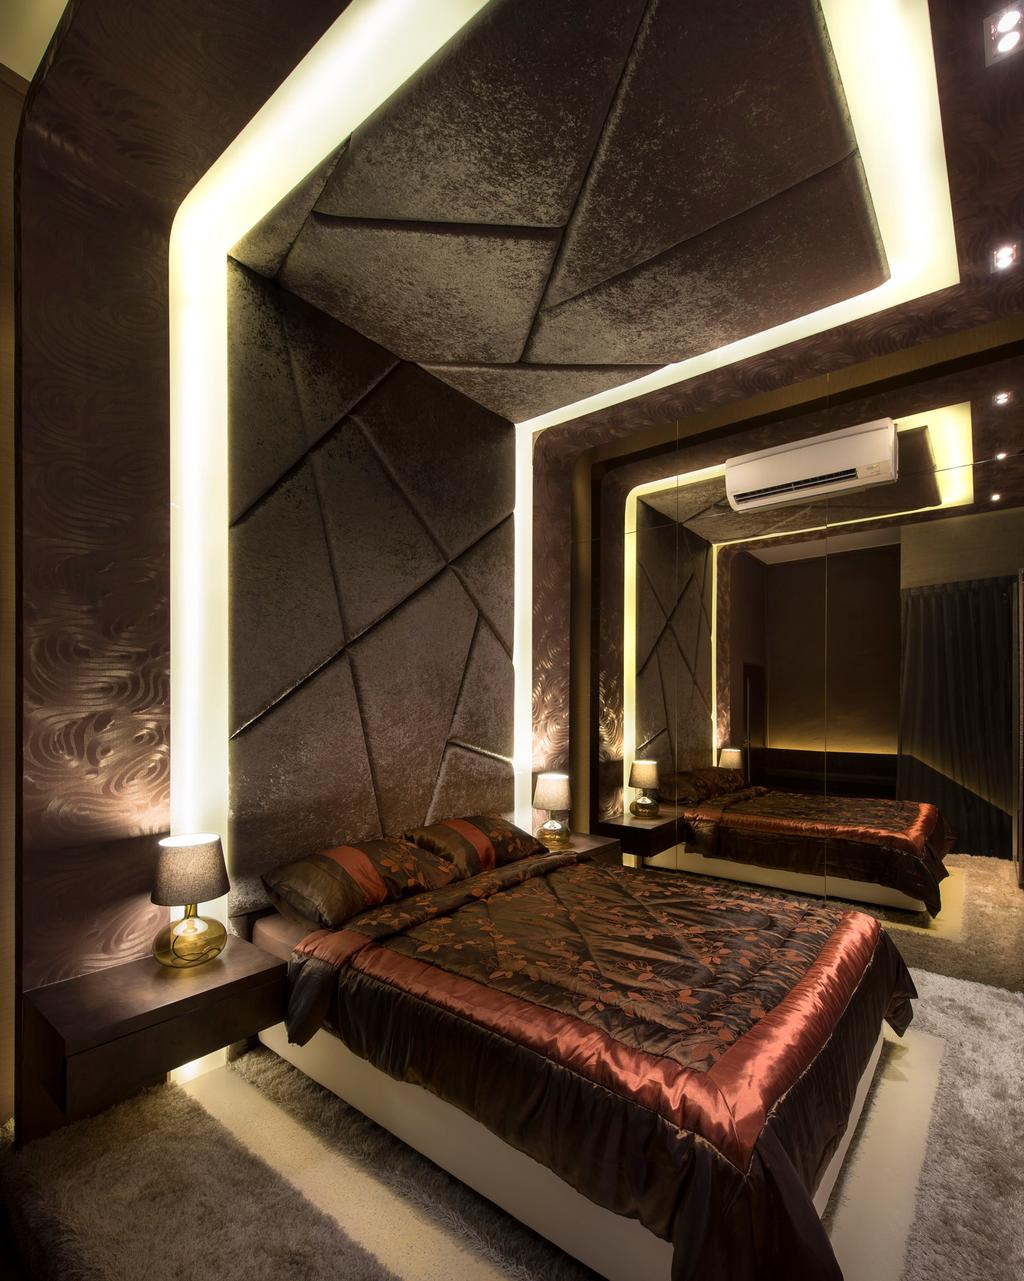 Beaux Monde Show Room (Joo Chiat), Commercial, Interior Designer, Beaux Monde, Modern, Bedroom, Modern Contemporary Bedroom, King Size Bed, Cozy, Cosy, Hidden Interior Lighting, Classy, Mirror Panel, Lamp, Appliance, Electrical Device, Oven